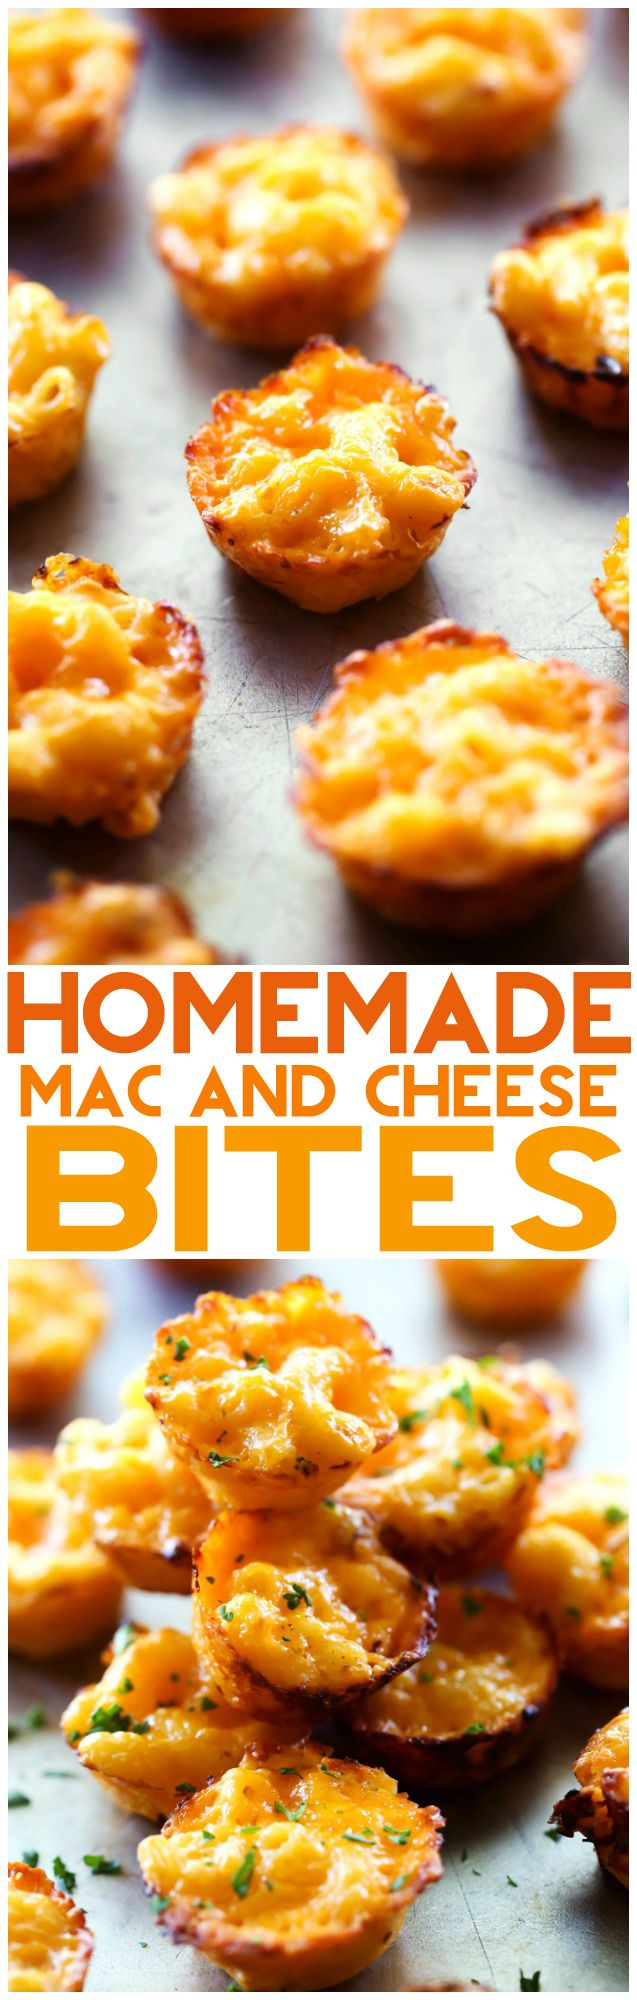 Homemade Mac and Cheese Bites - These are so simple and the perfect finger food ideal for serving kids and as an appetizer!